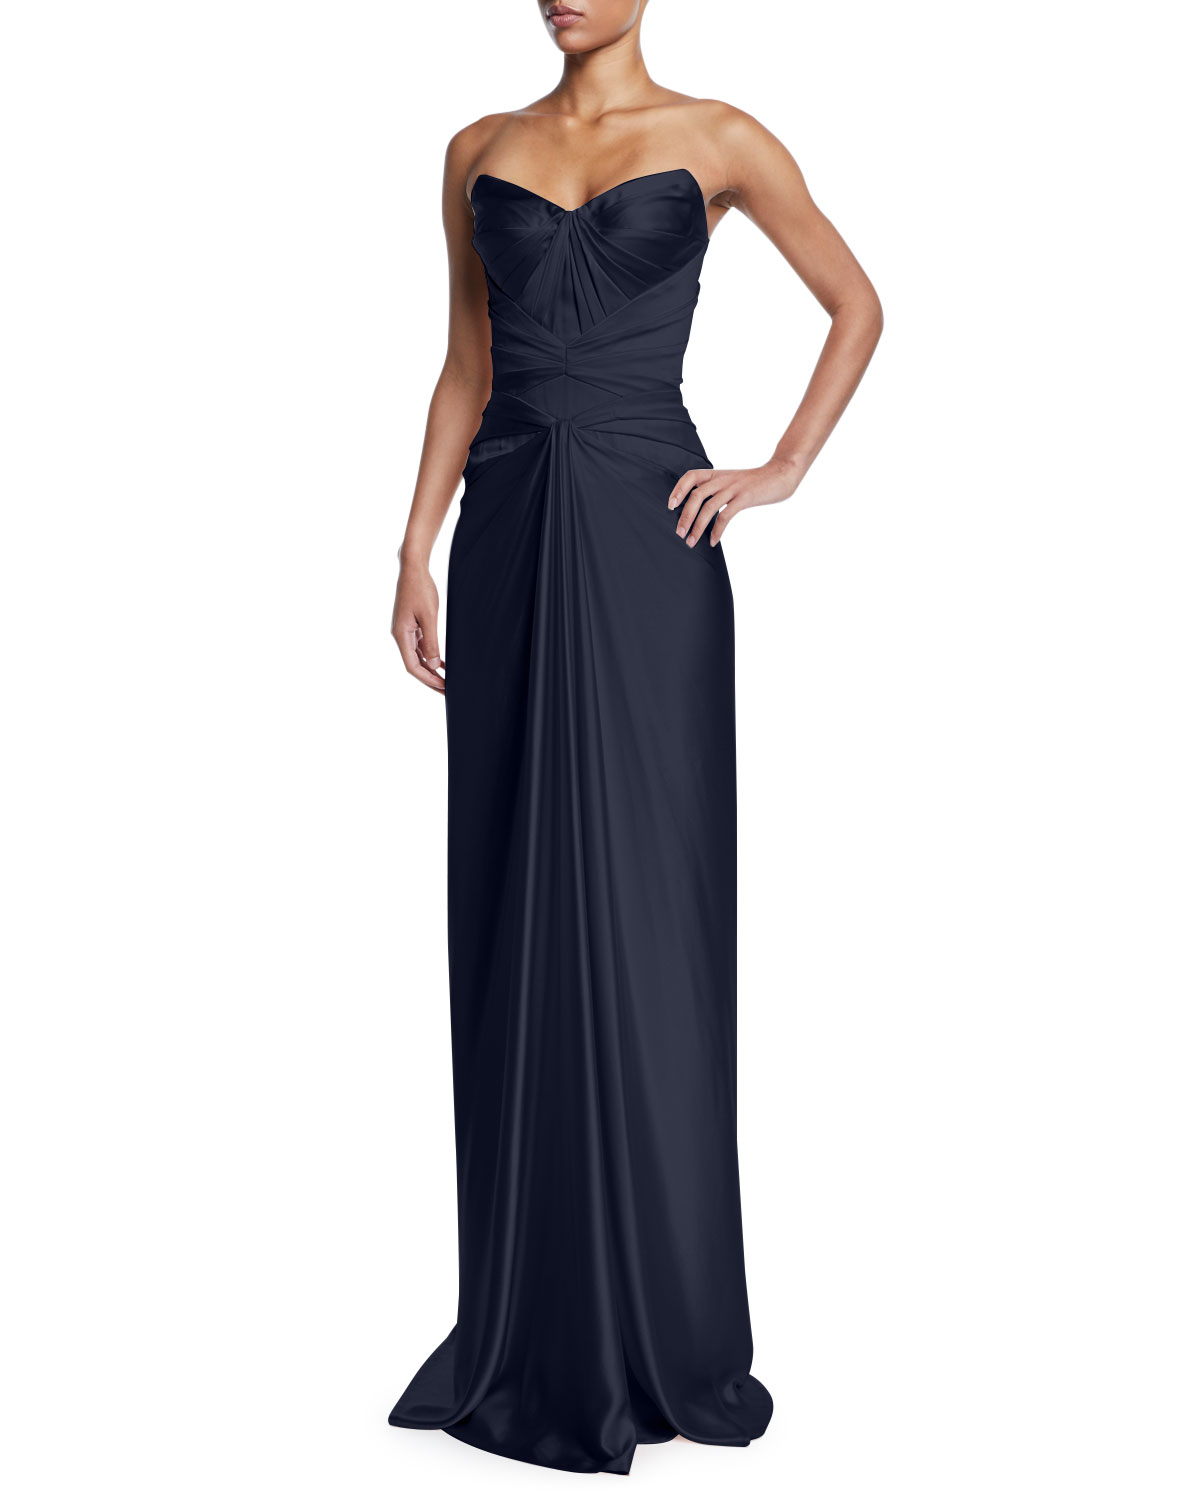 Strapless Knot Front Bustier Dress